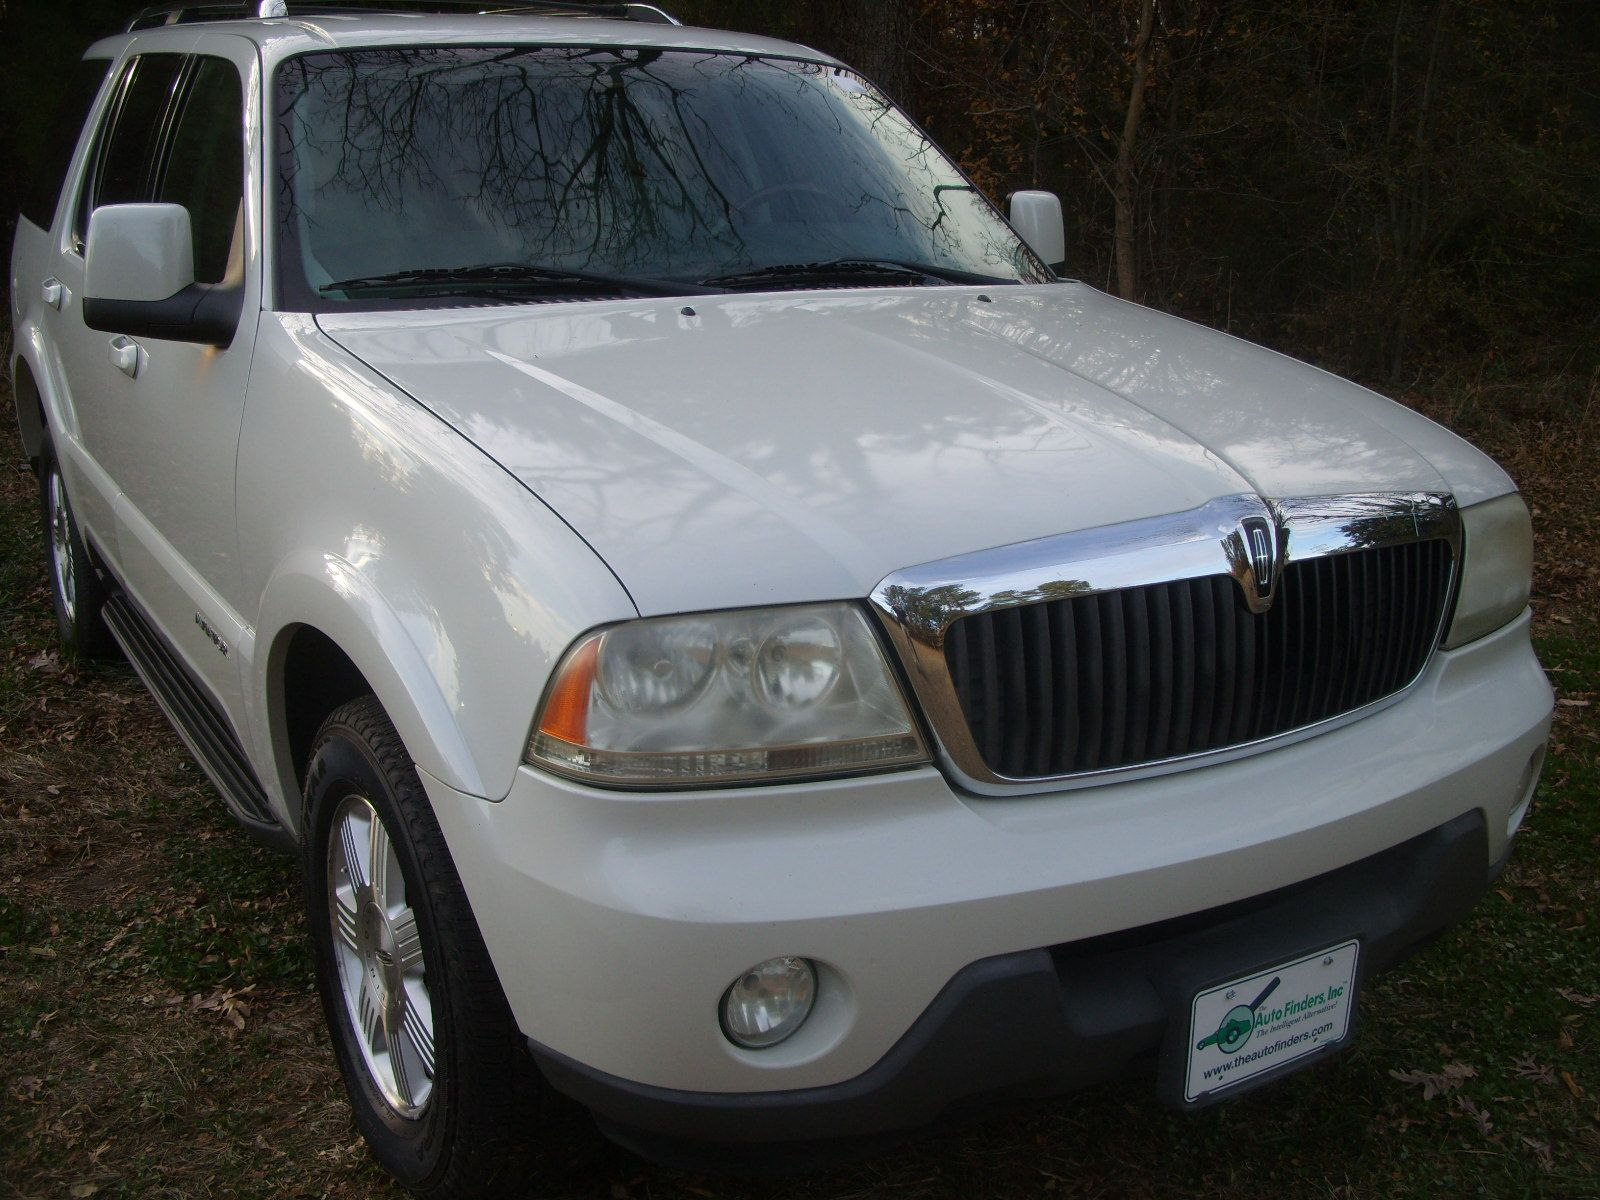 used 2004 lincoln aviator ultimate for sale durham nc cars for sale cars for sale. Black Bedroom Furniture Sets. Home Design Ideas